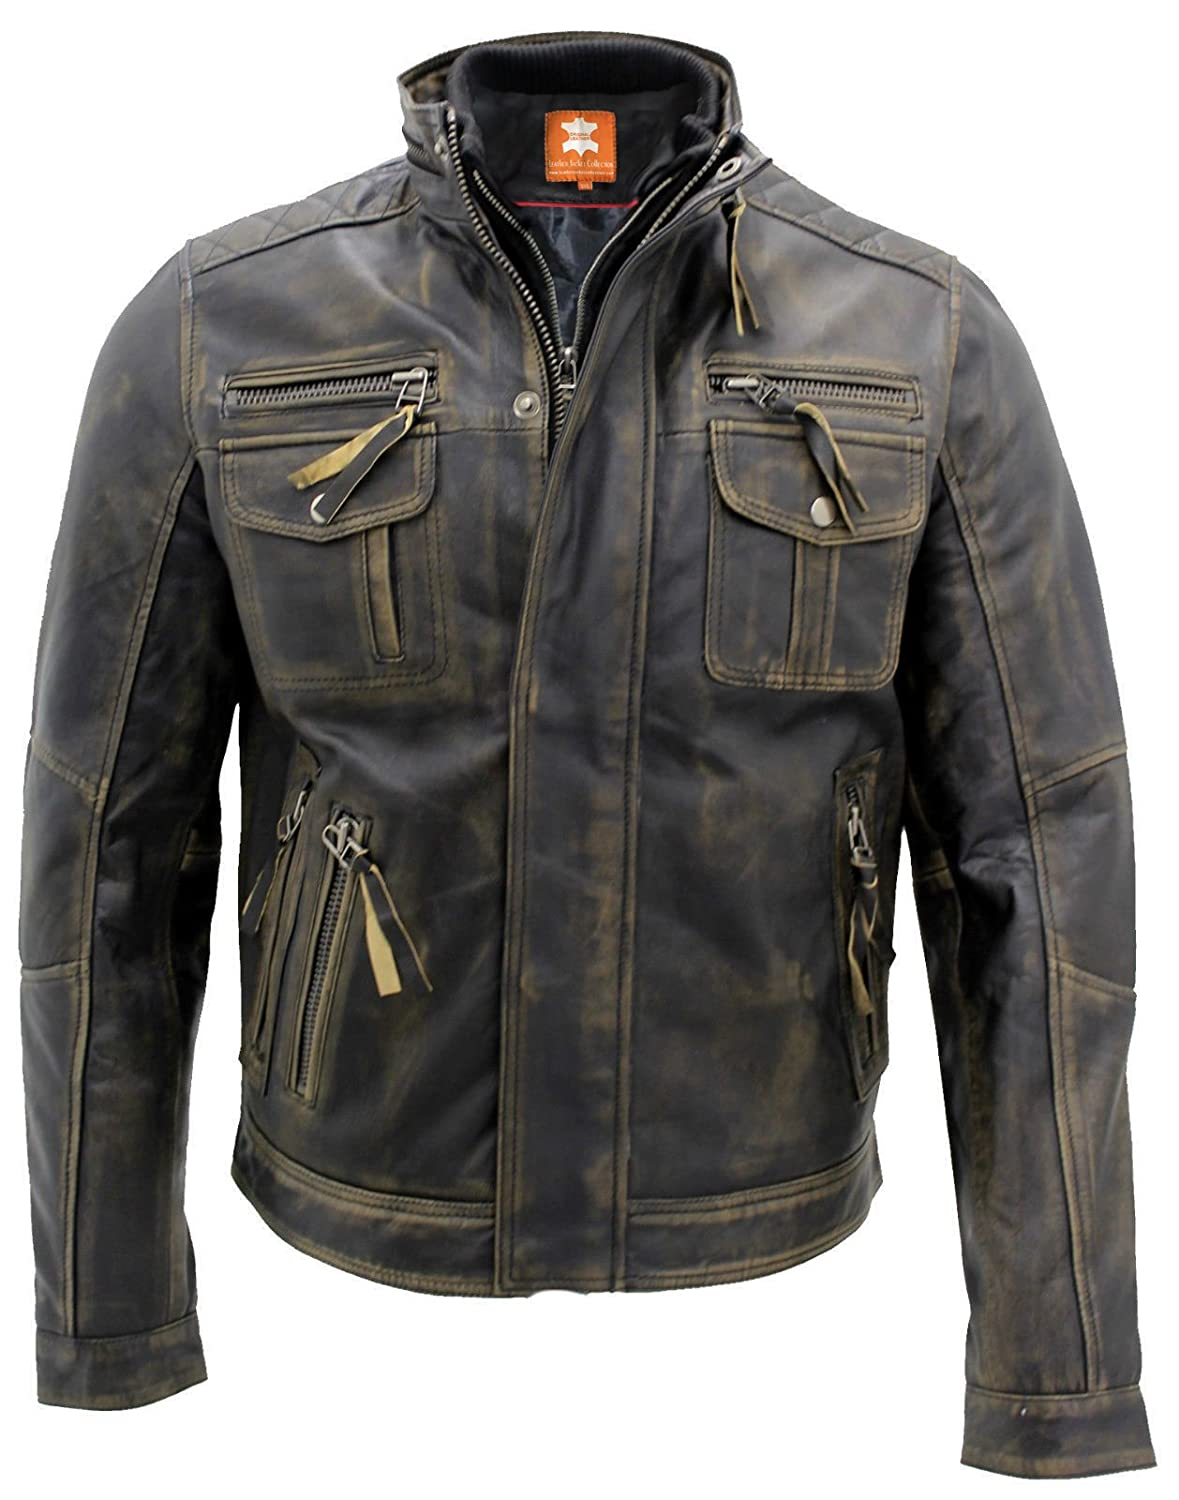 Biker Style, Motorcycle, Cafe Racer, Brown Distressed Leather Jacket Men Leather Mania ●→ hgh-001